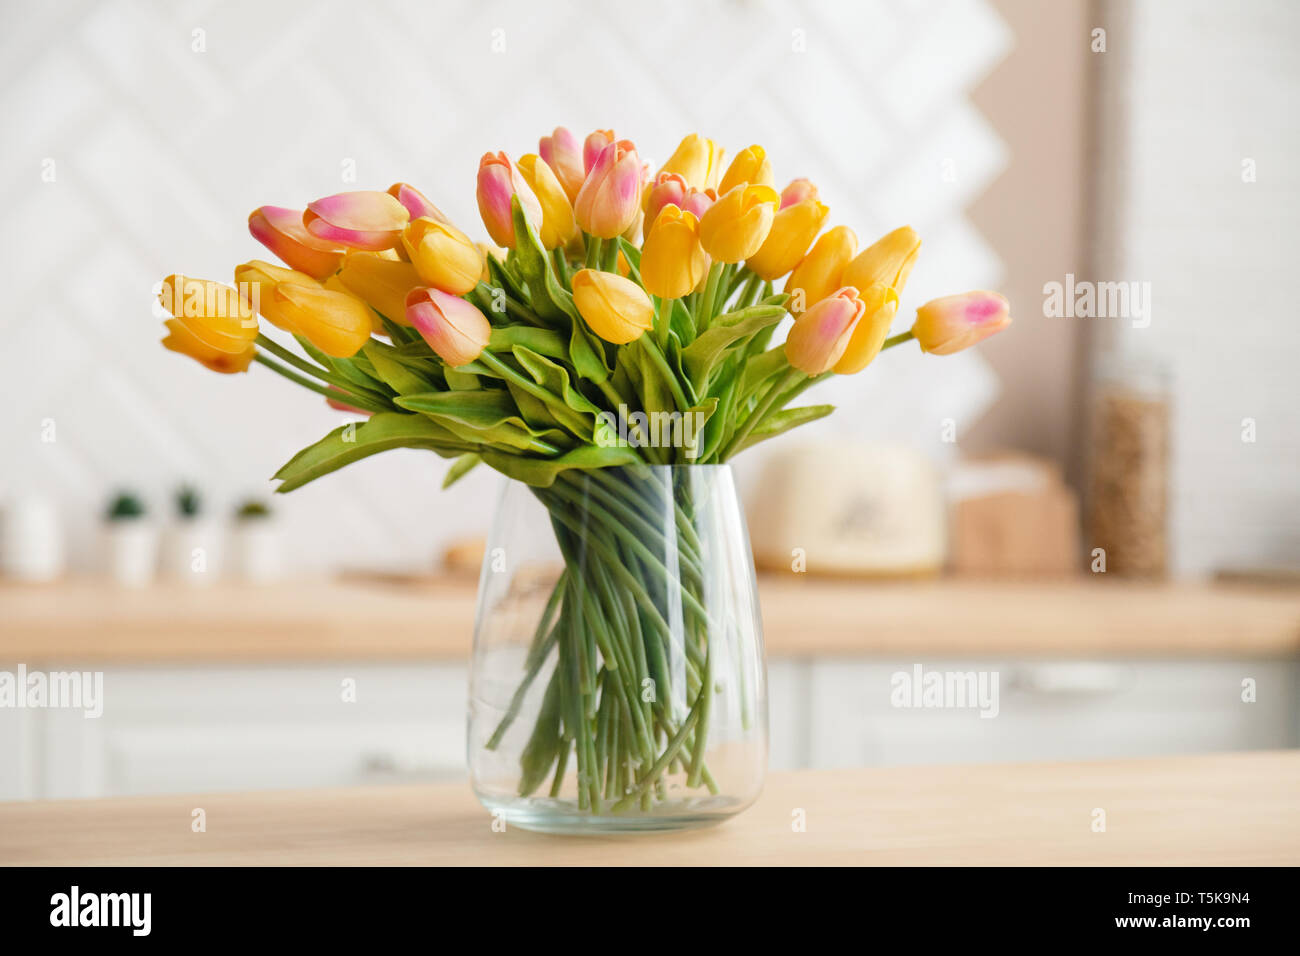 Composition Florale Dans Grand Vase Transparent Transparent Glass Vase Photos Transparent Glass Vase Images Alamy